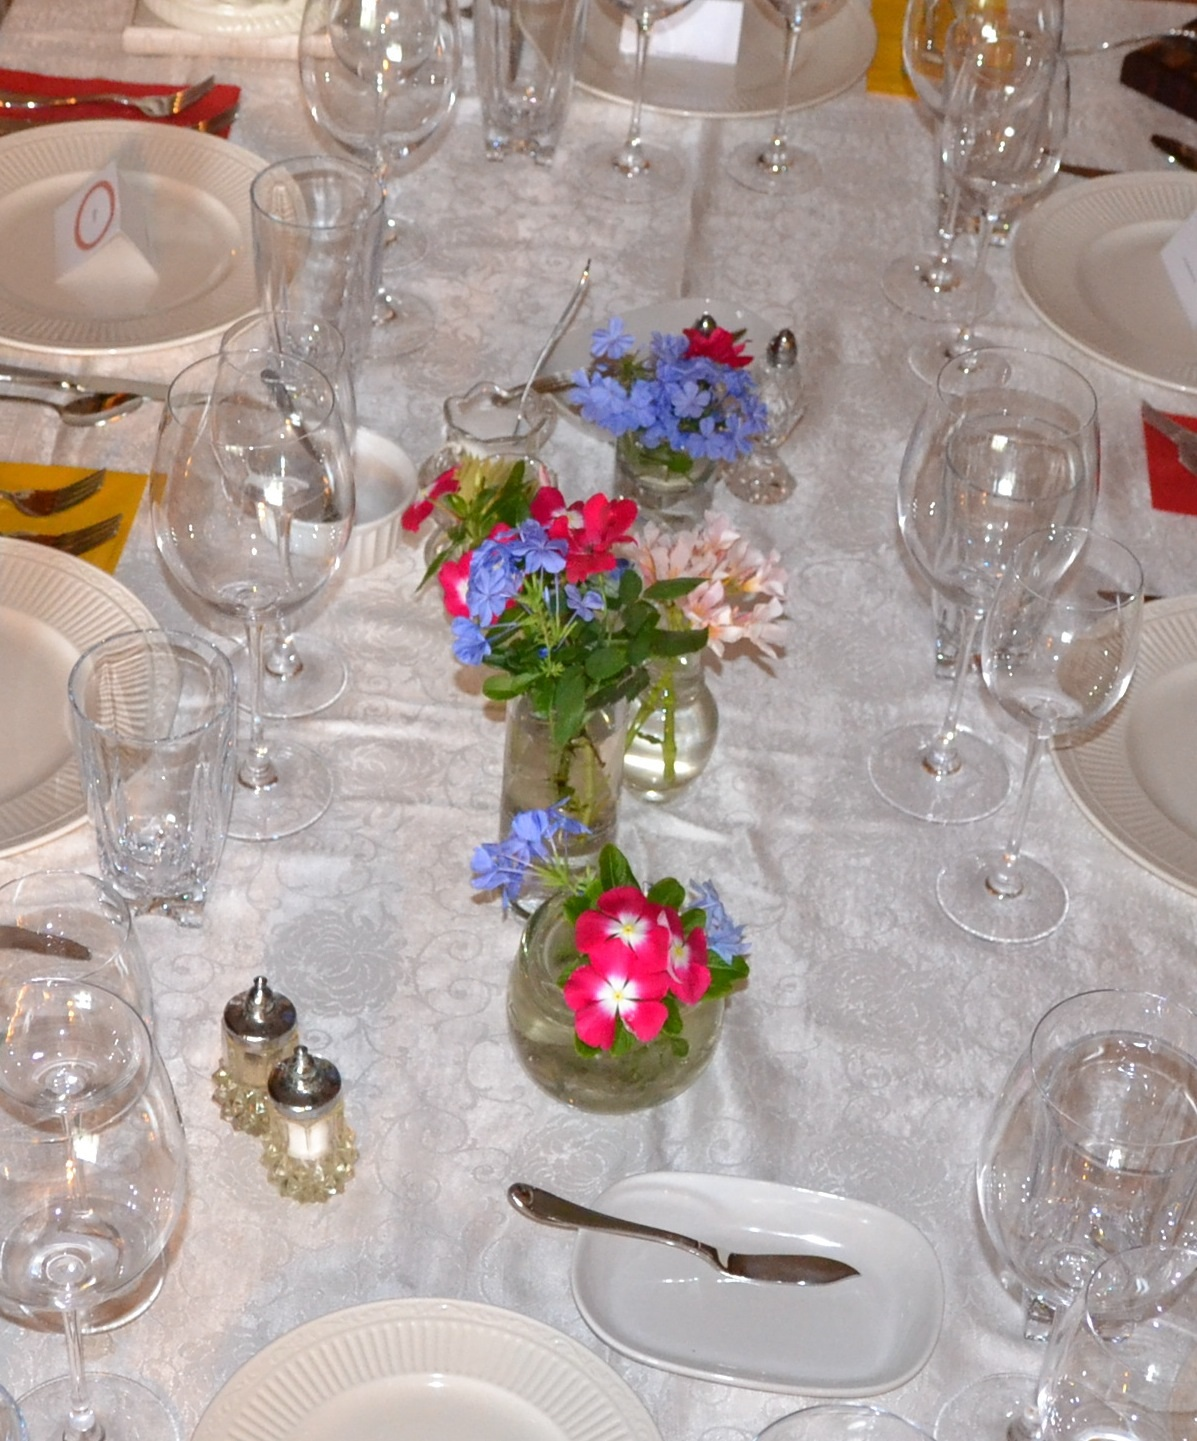 Setting a Gorgeous Table